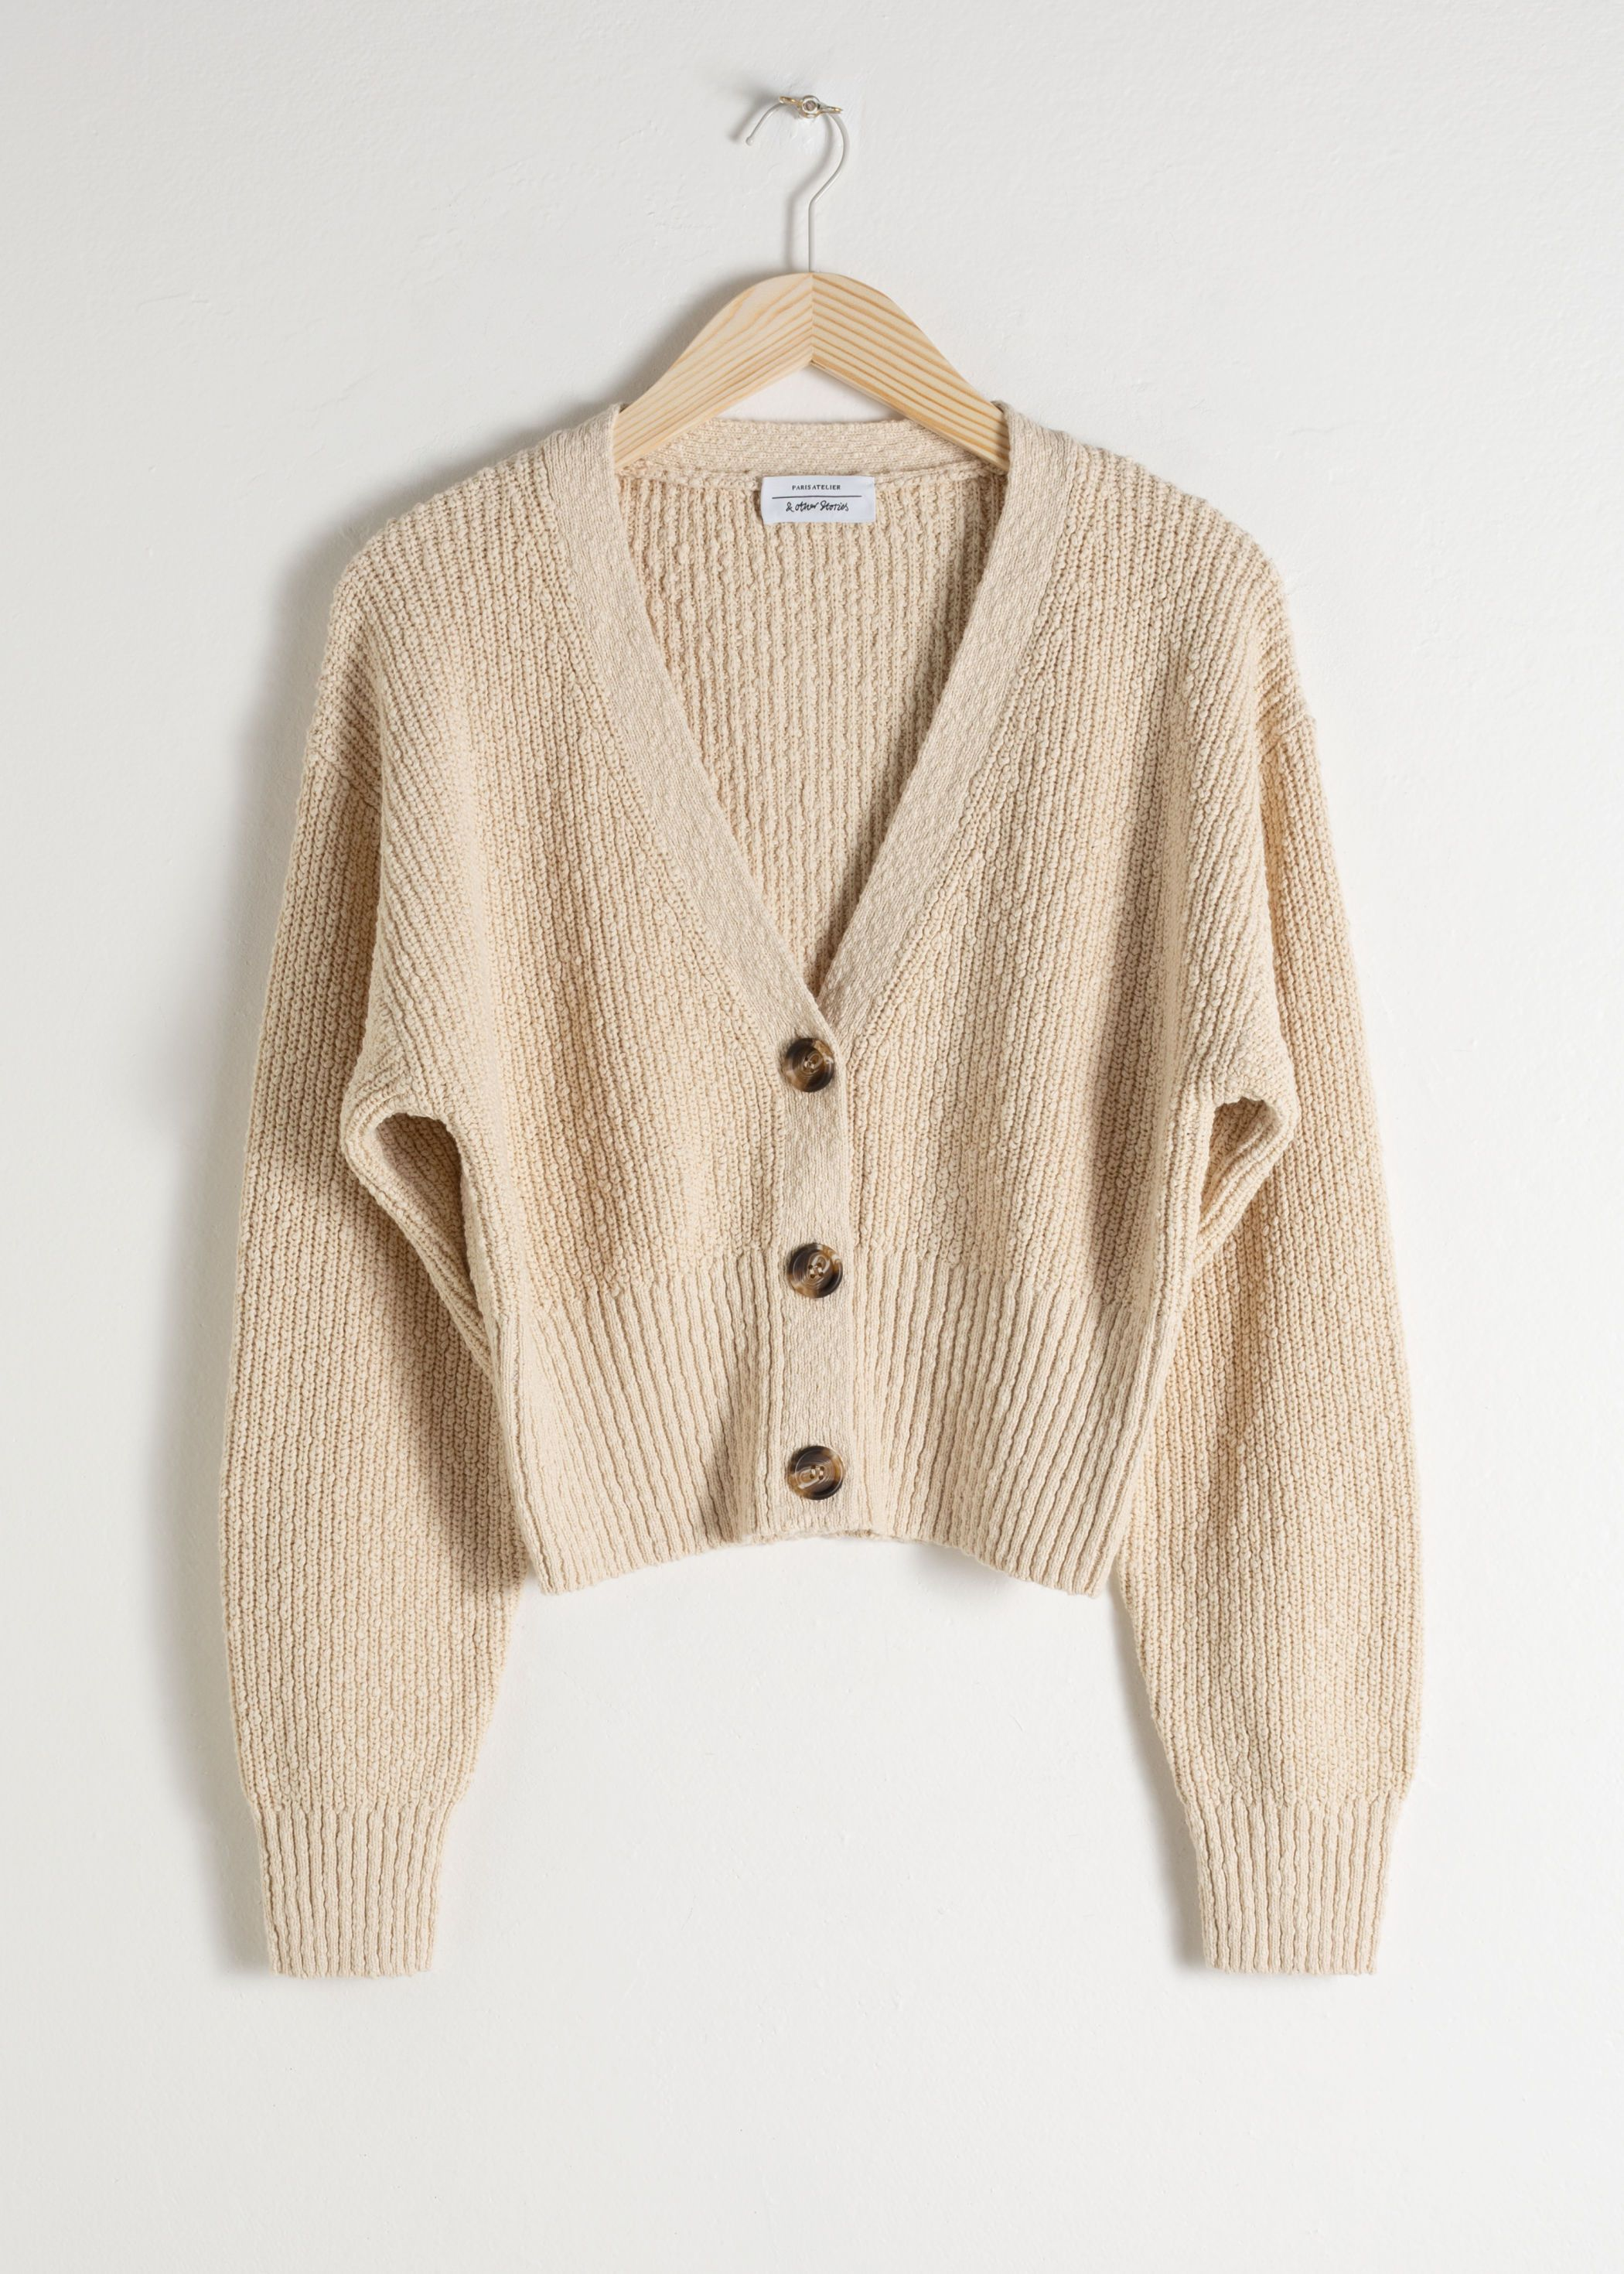 Cropped Textured Cotton Cardigan | Cable knit cardigan